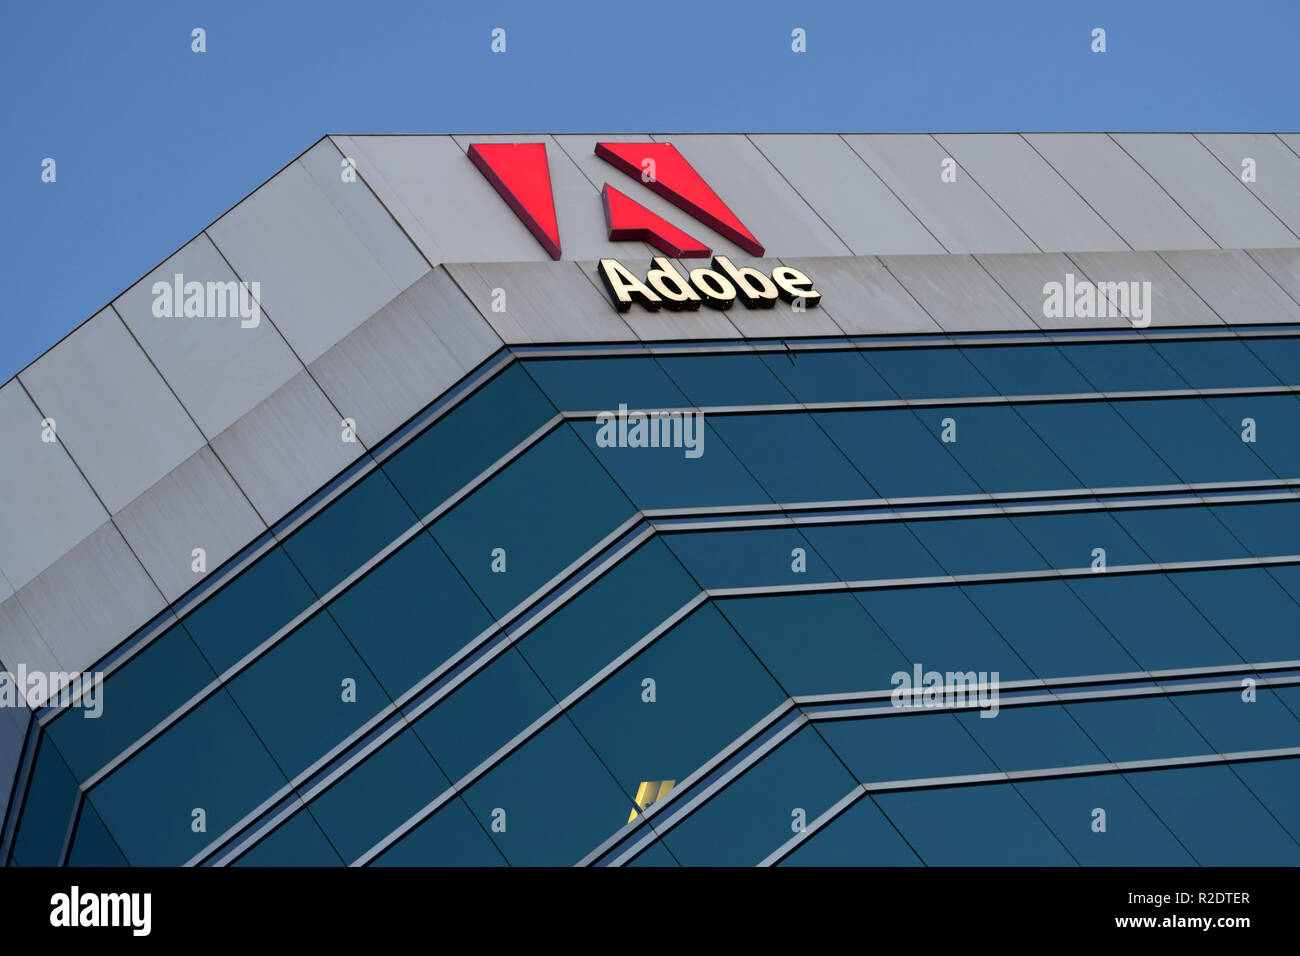 Adobe corporates office in Ottawa, Canada - Stock Image